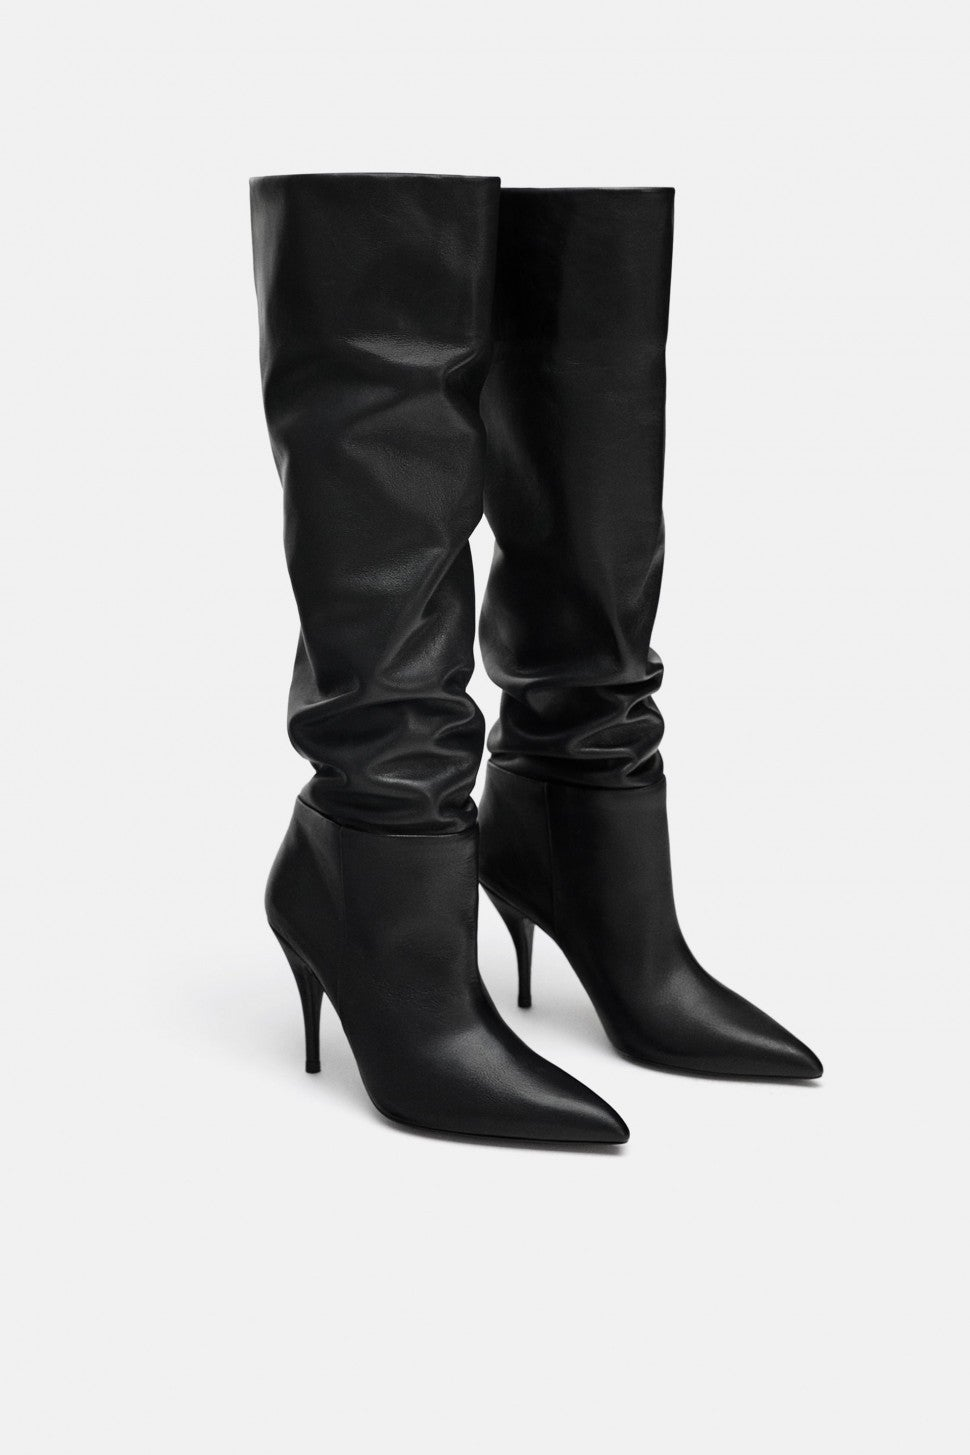 Zara leather slouchy boots